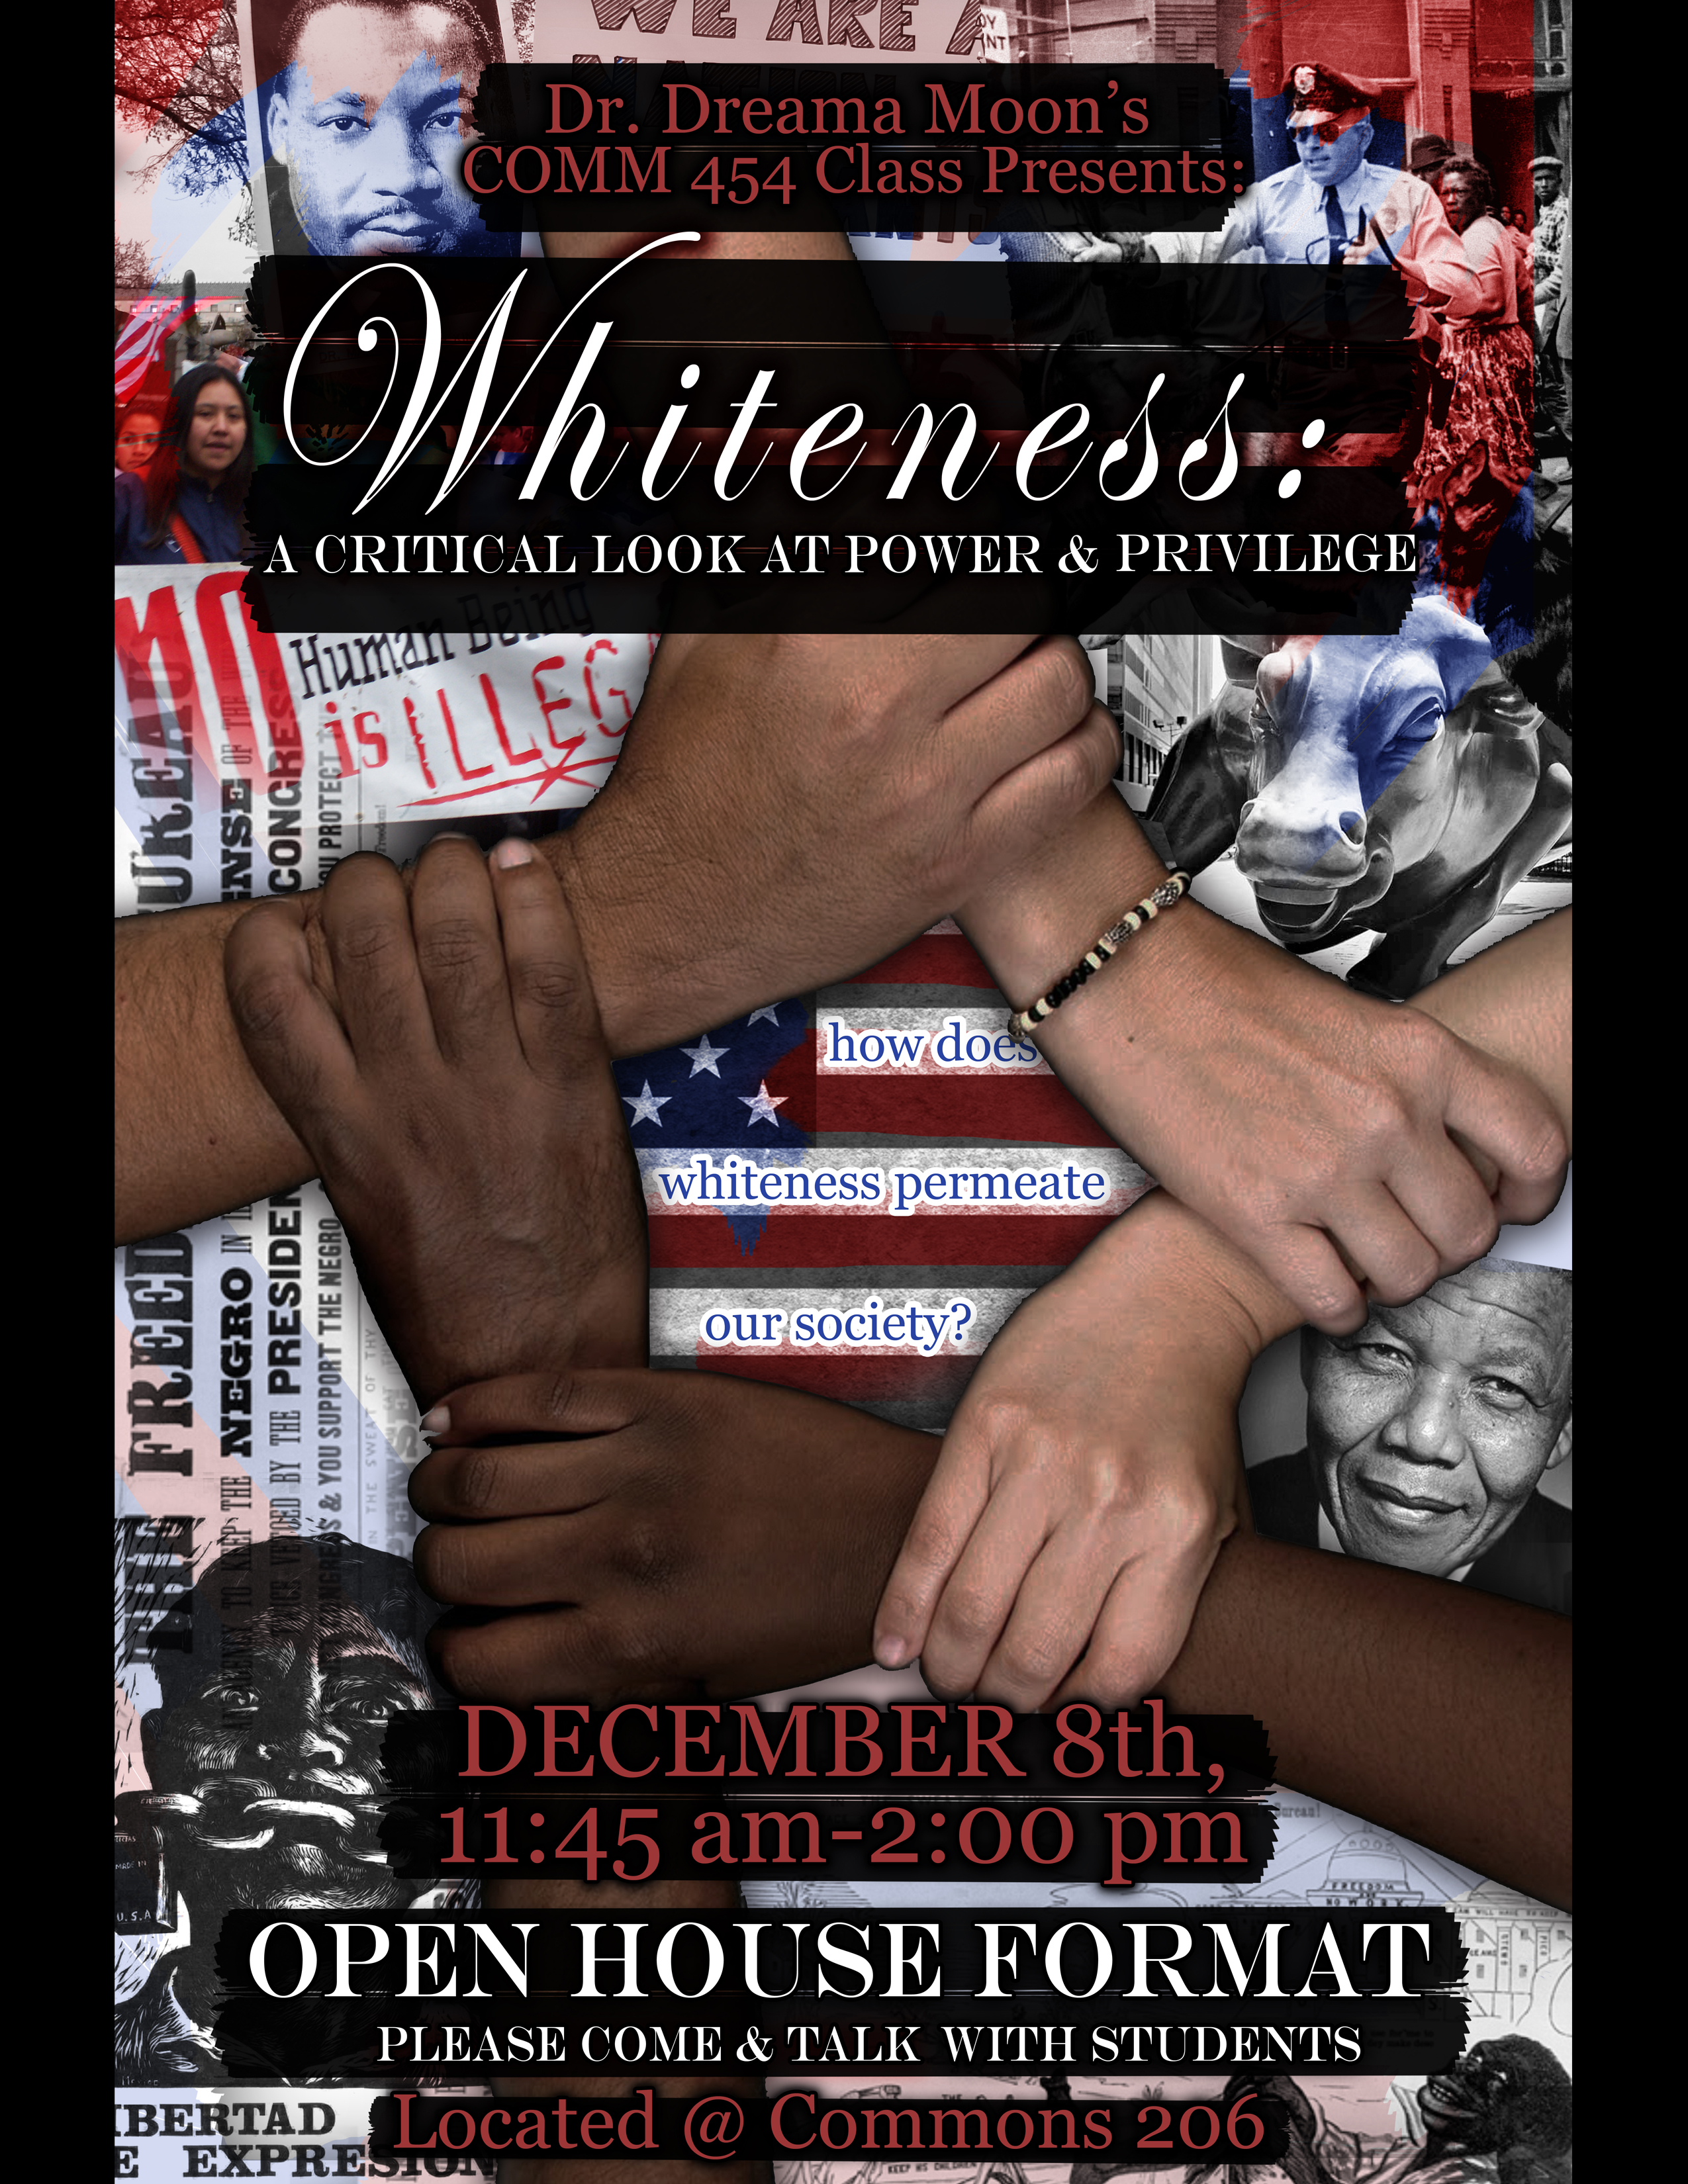 2011 Whiteness Forum Poster